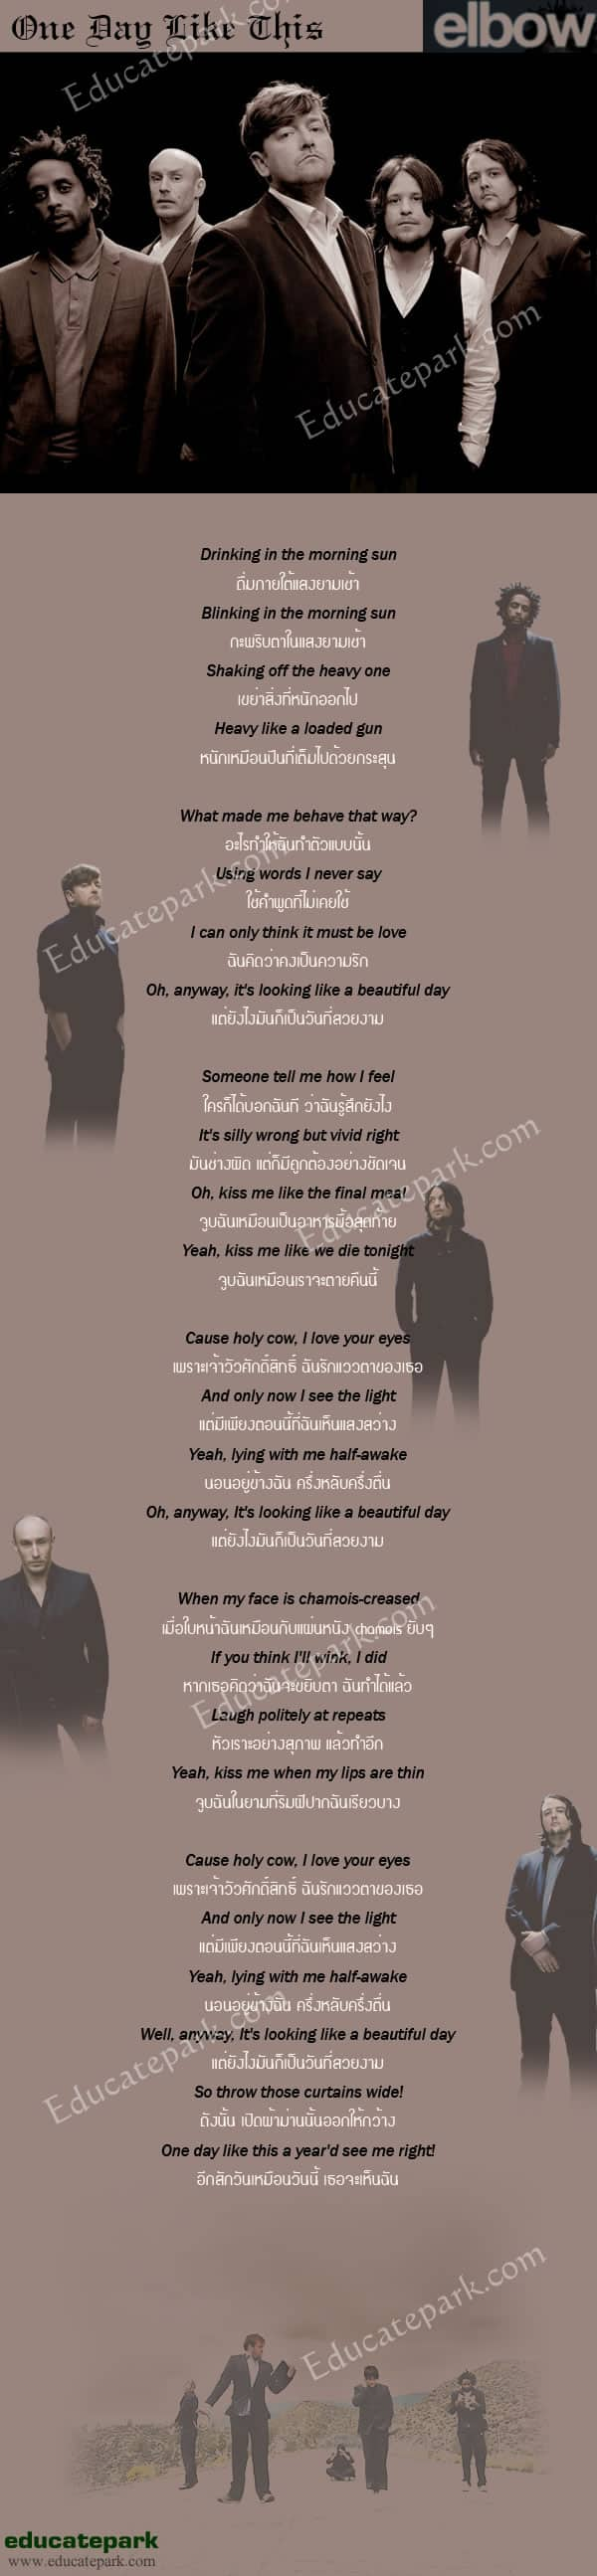 แปลเพลง One Day Like This - Elbow